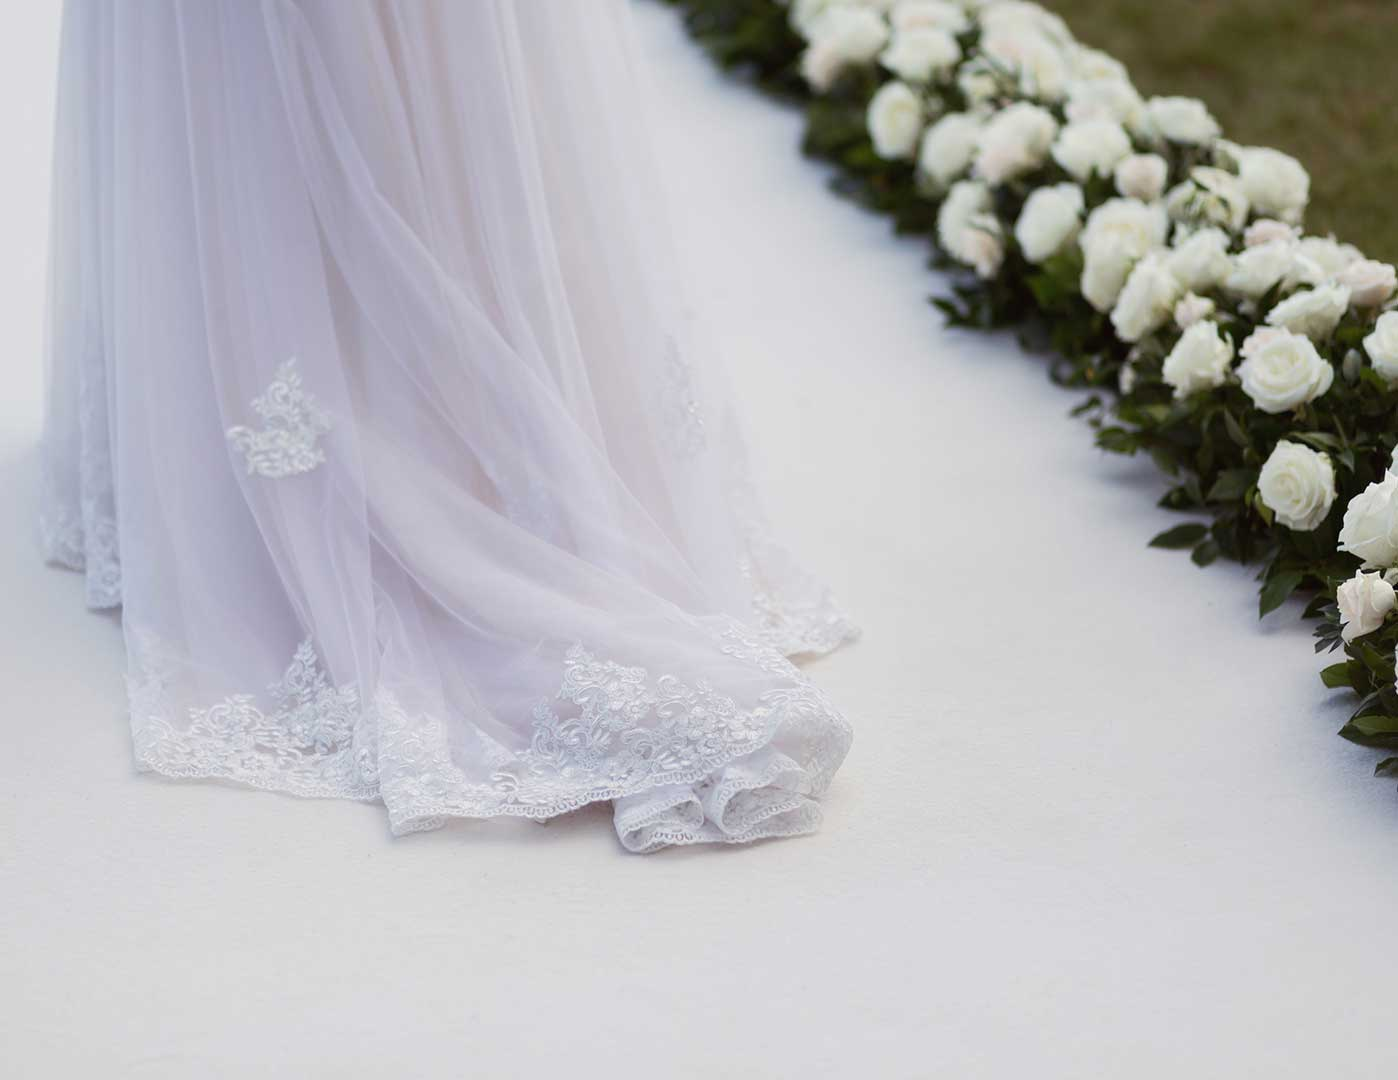 Destination Weddings Ireland, Ashford Castle, Olivia Buckley International, Wedding planners in Ireland, Event Planners in Ireland, Bride, Wedding Dress